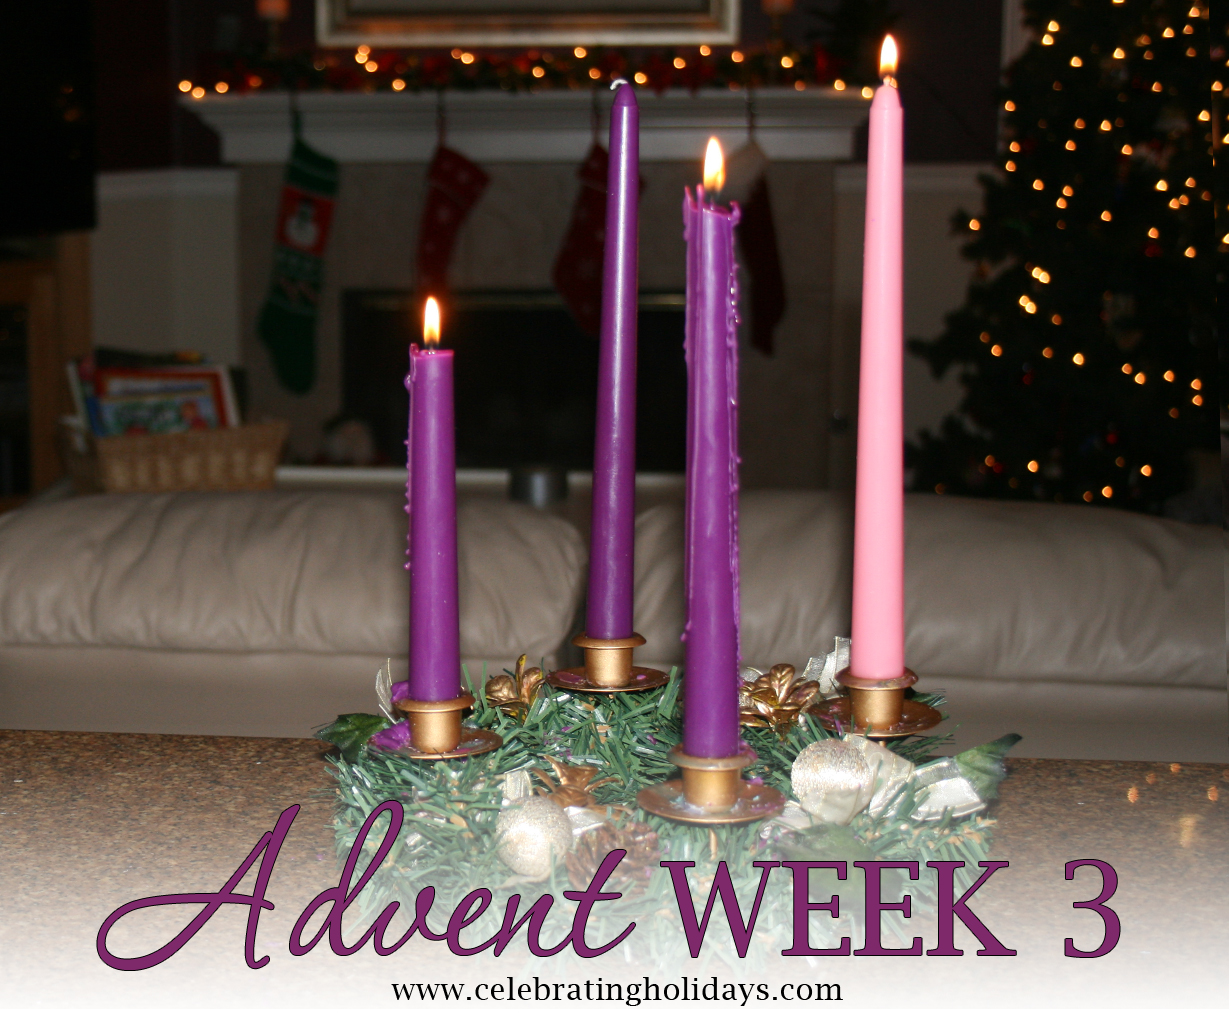 church at newsong advent week 3. Black Bedroom Furniture Sets. Home Design Ideas